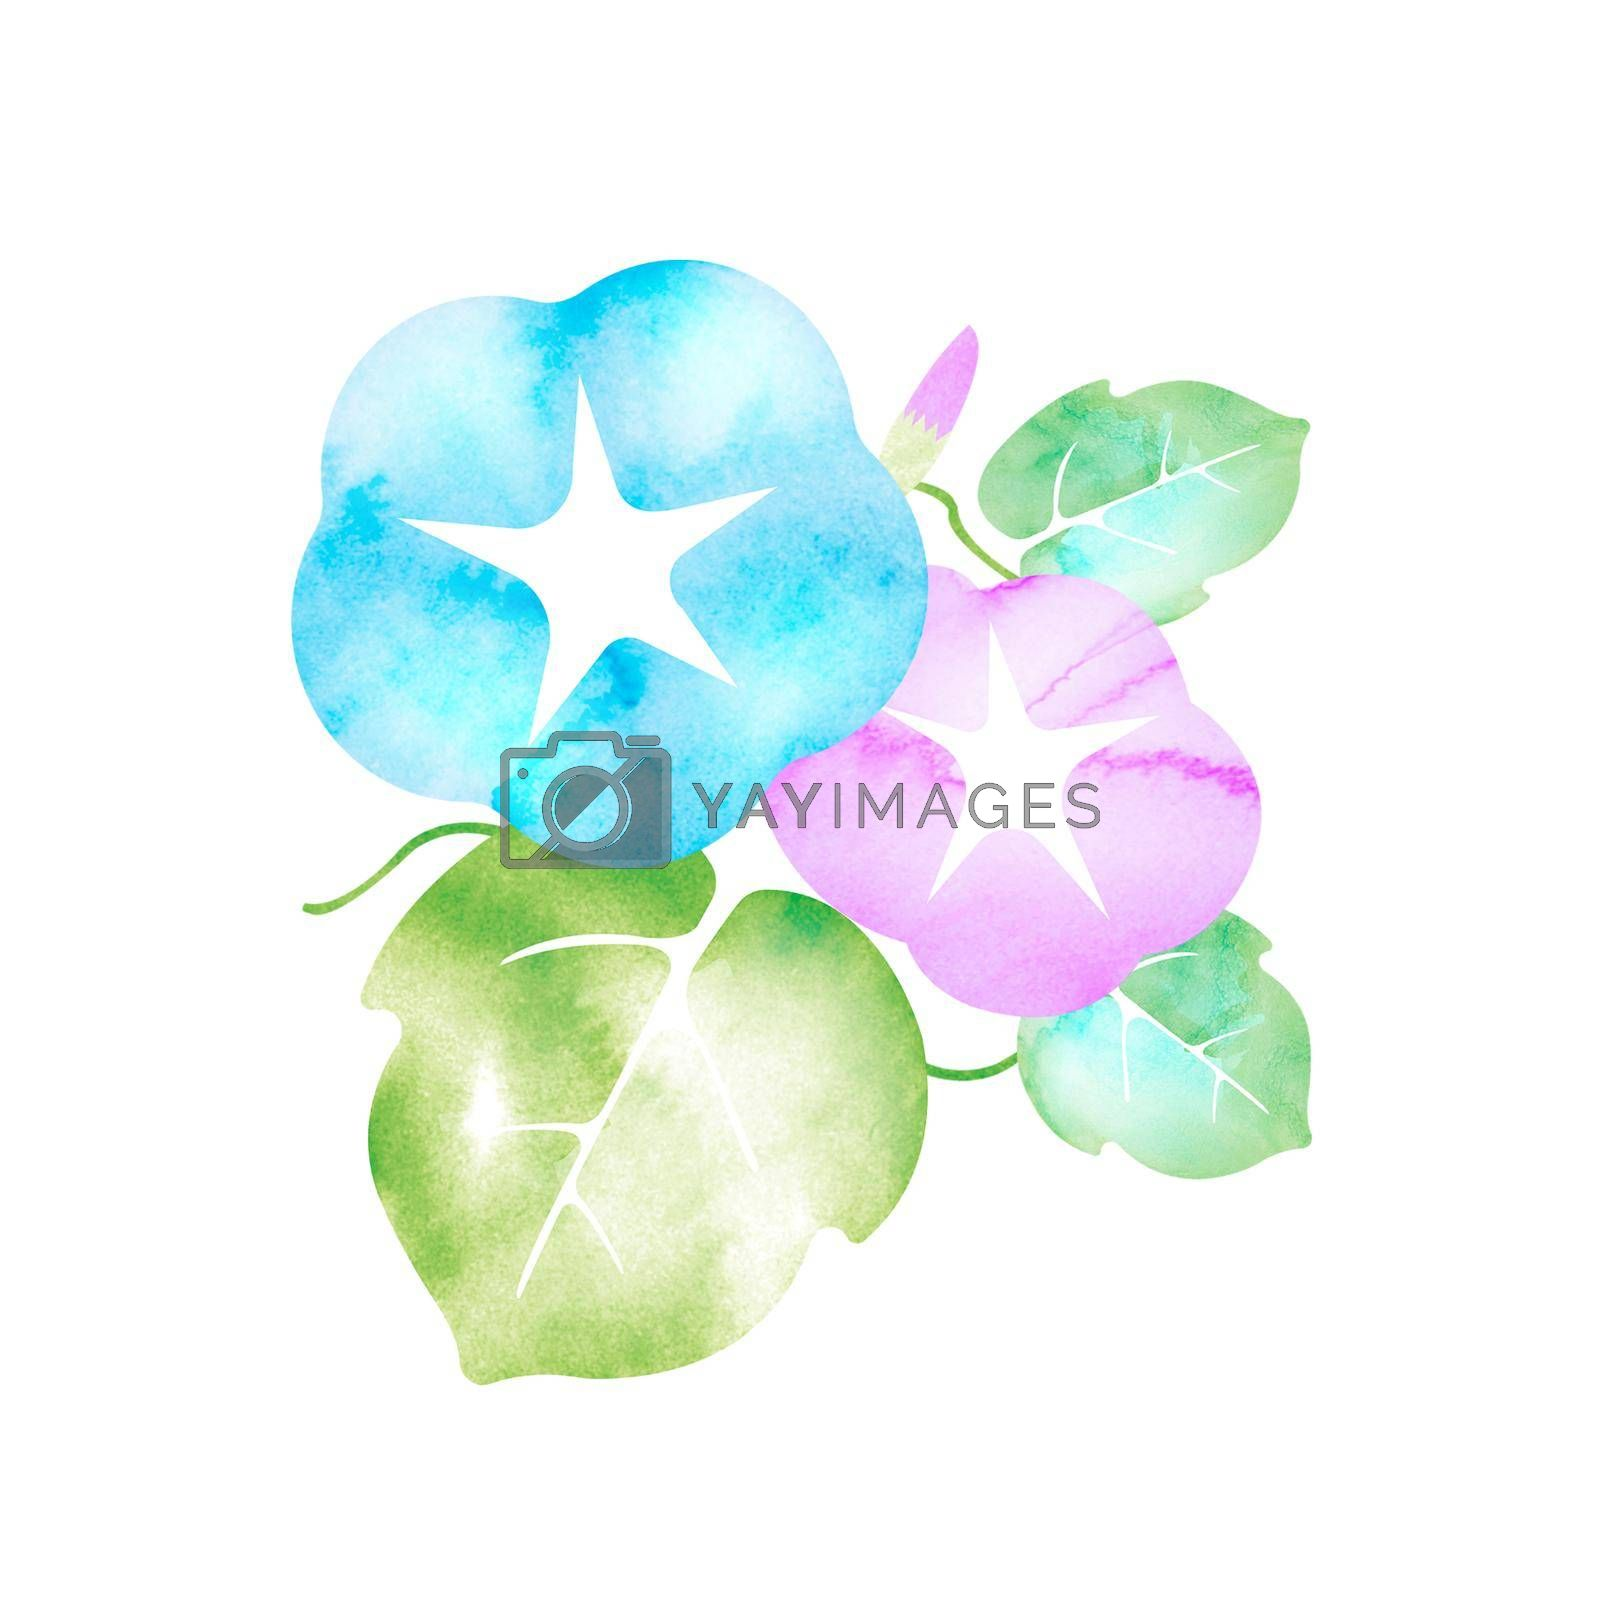 Royalty free image of Summer motif watercolor painting illustration for summer greeting card etc.   morning glory flower by barks